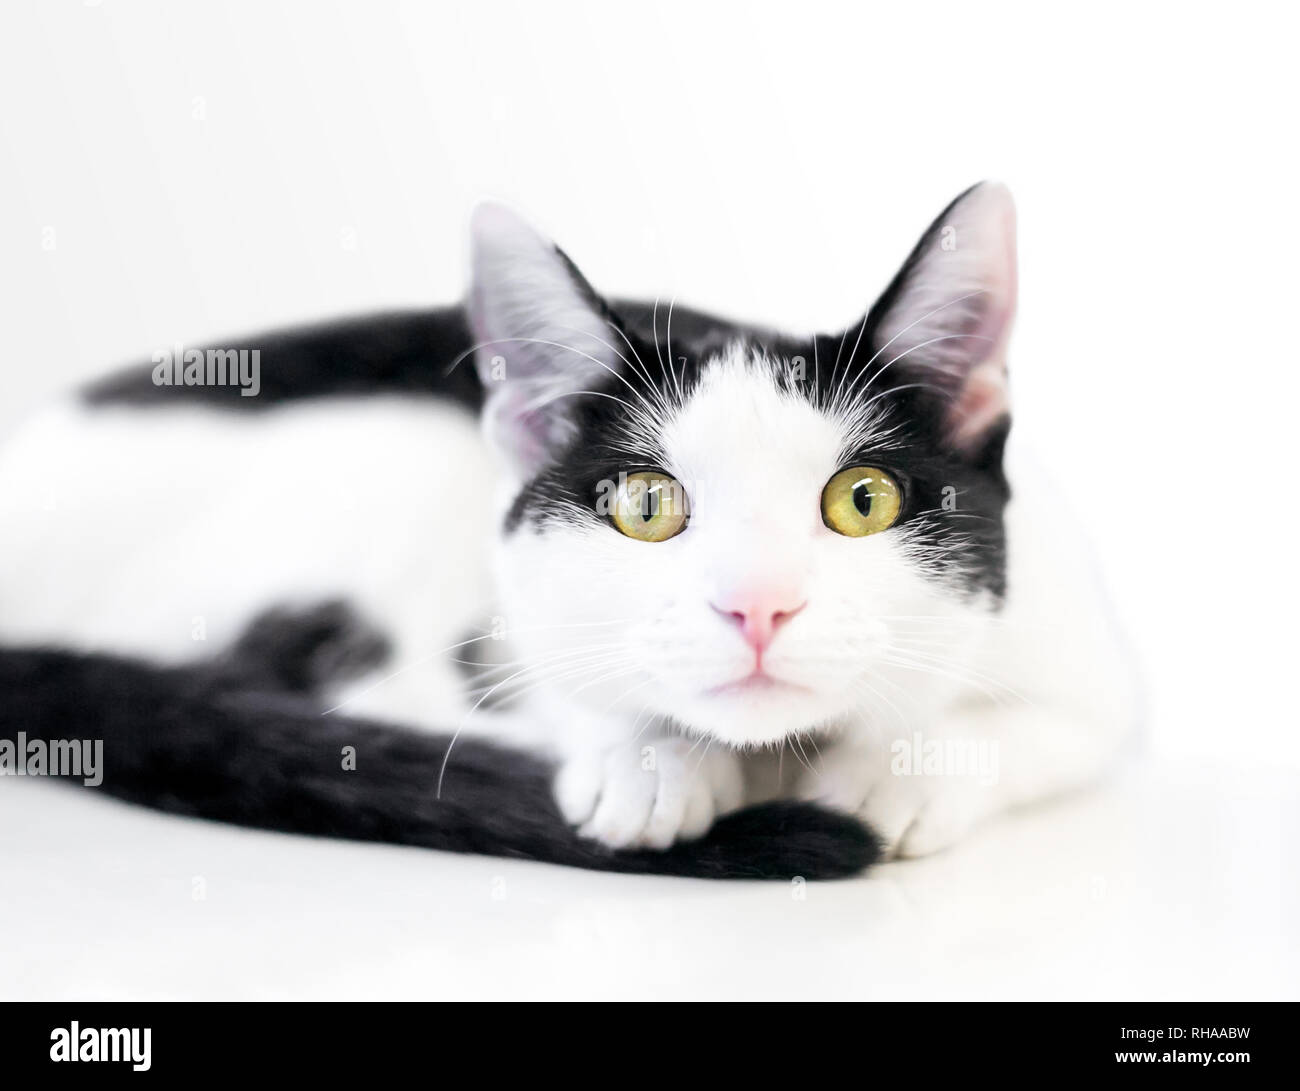 A black and white domestic shorthair cat with a nervous, wide eyed expression - Stock Image